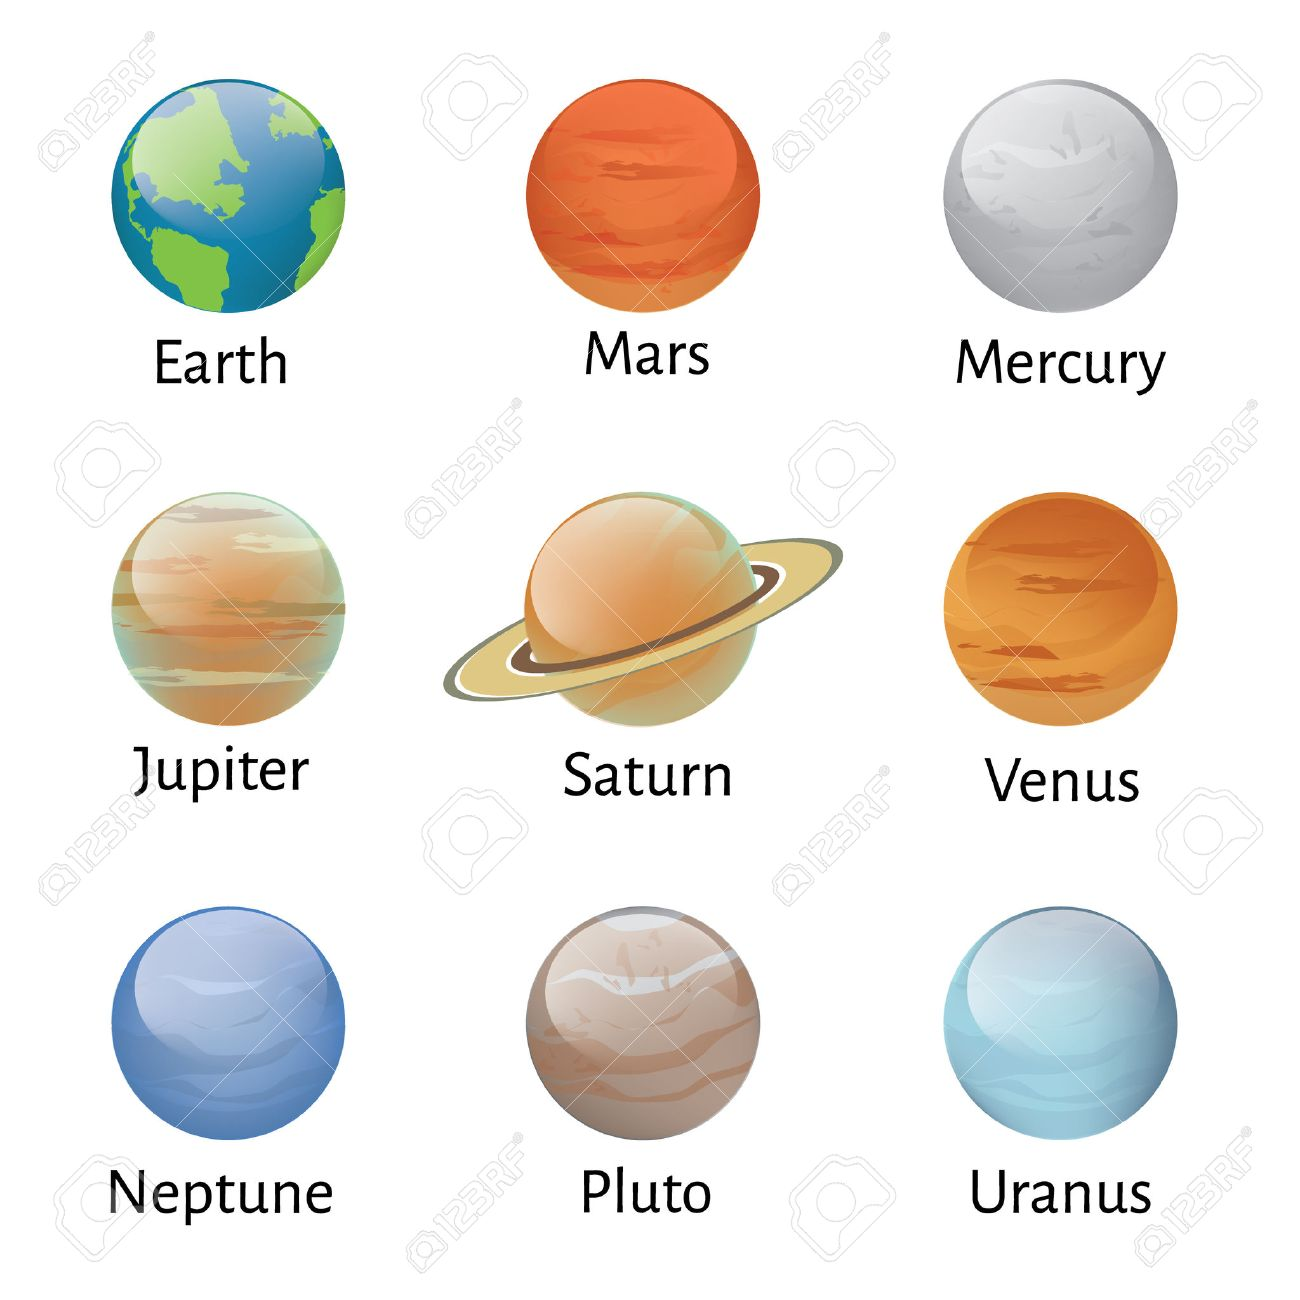 Vector illustration solar system planets icons on white background. Astronomy educational - 45907020